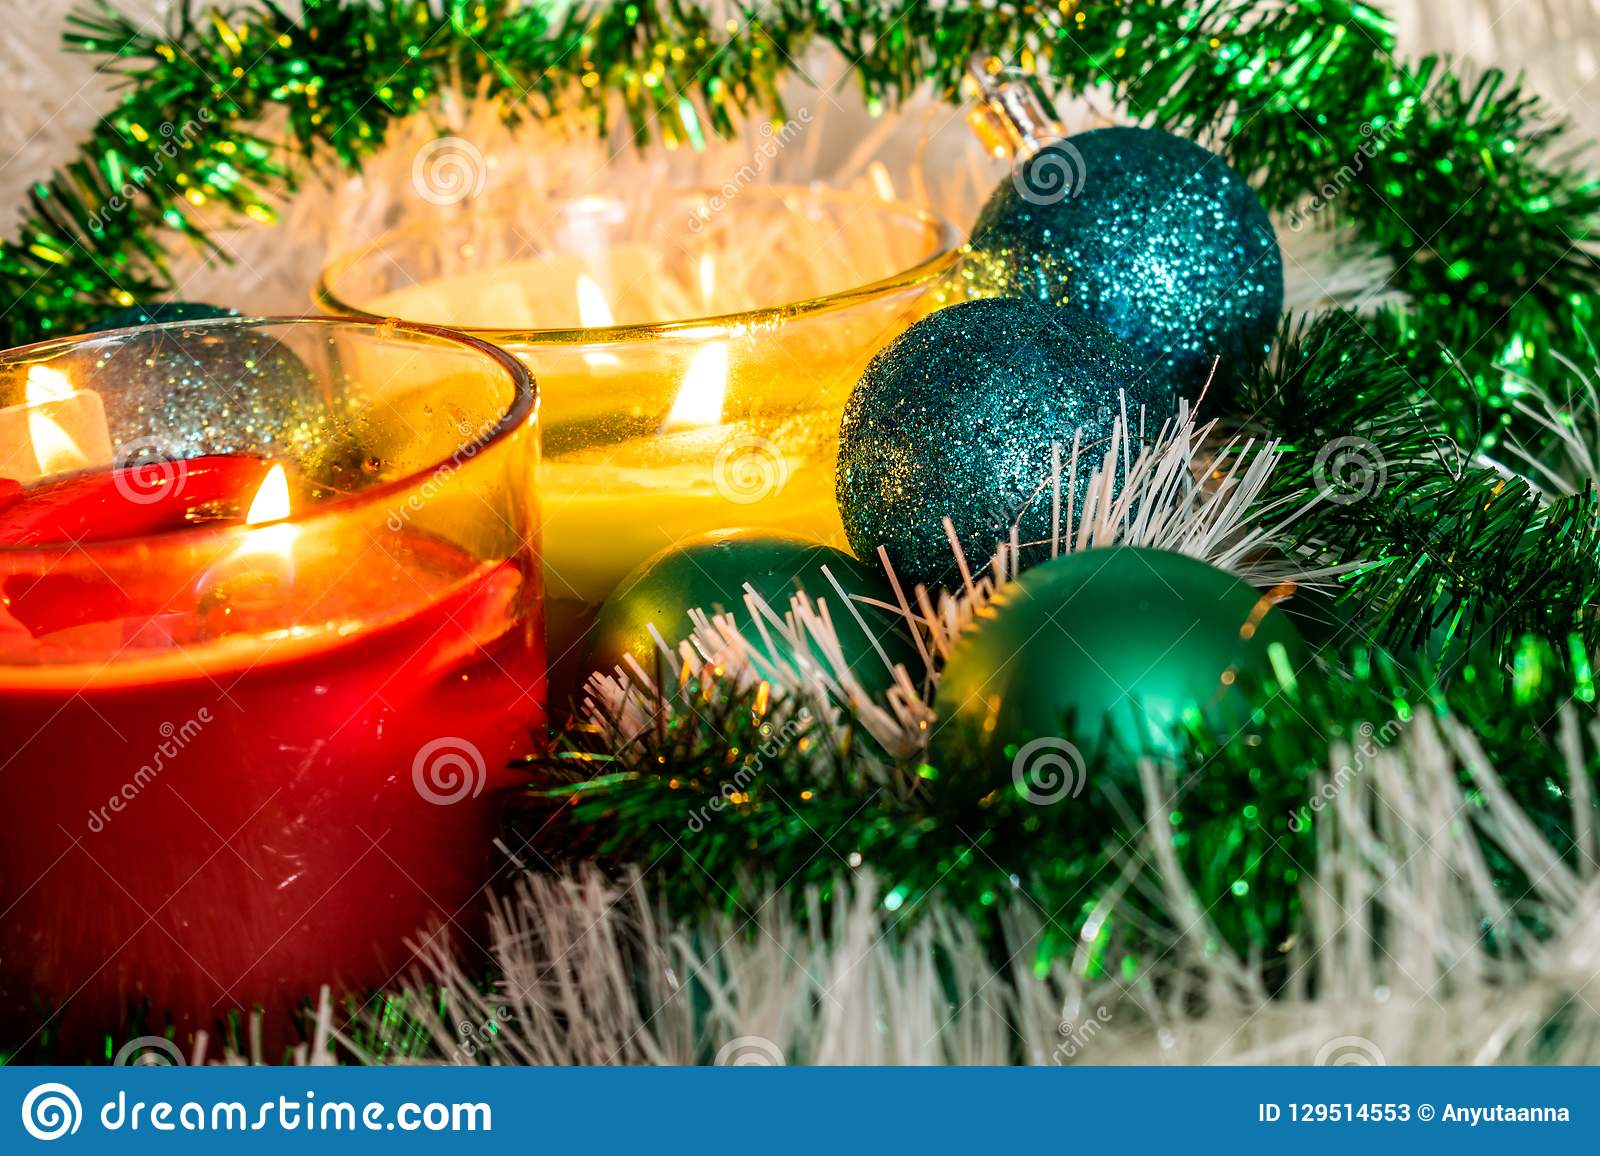 New year, green balls and decorations for the Christmas tree. Bright and beautiful scenery on a lemon background with white tinsel